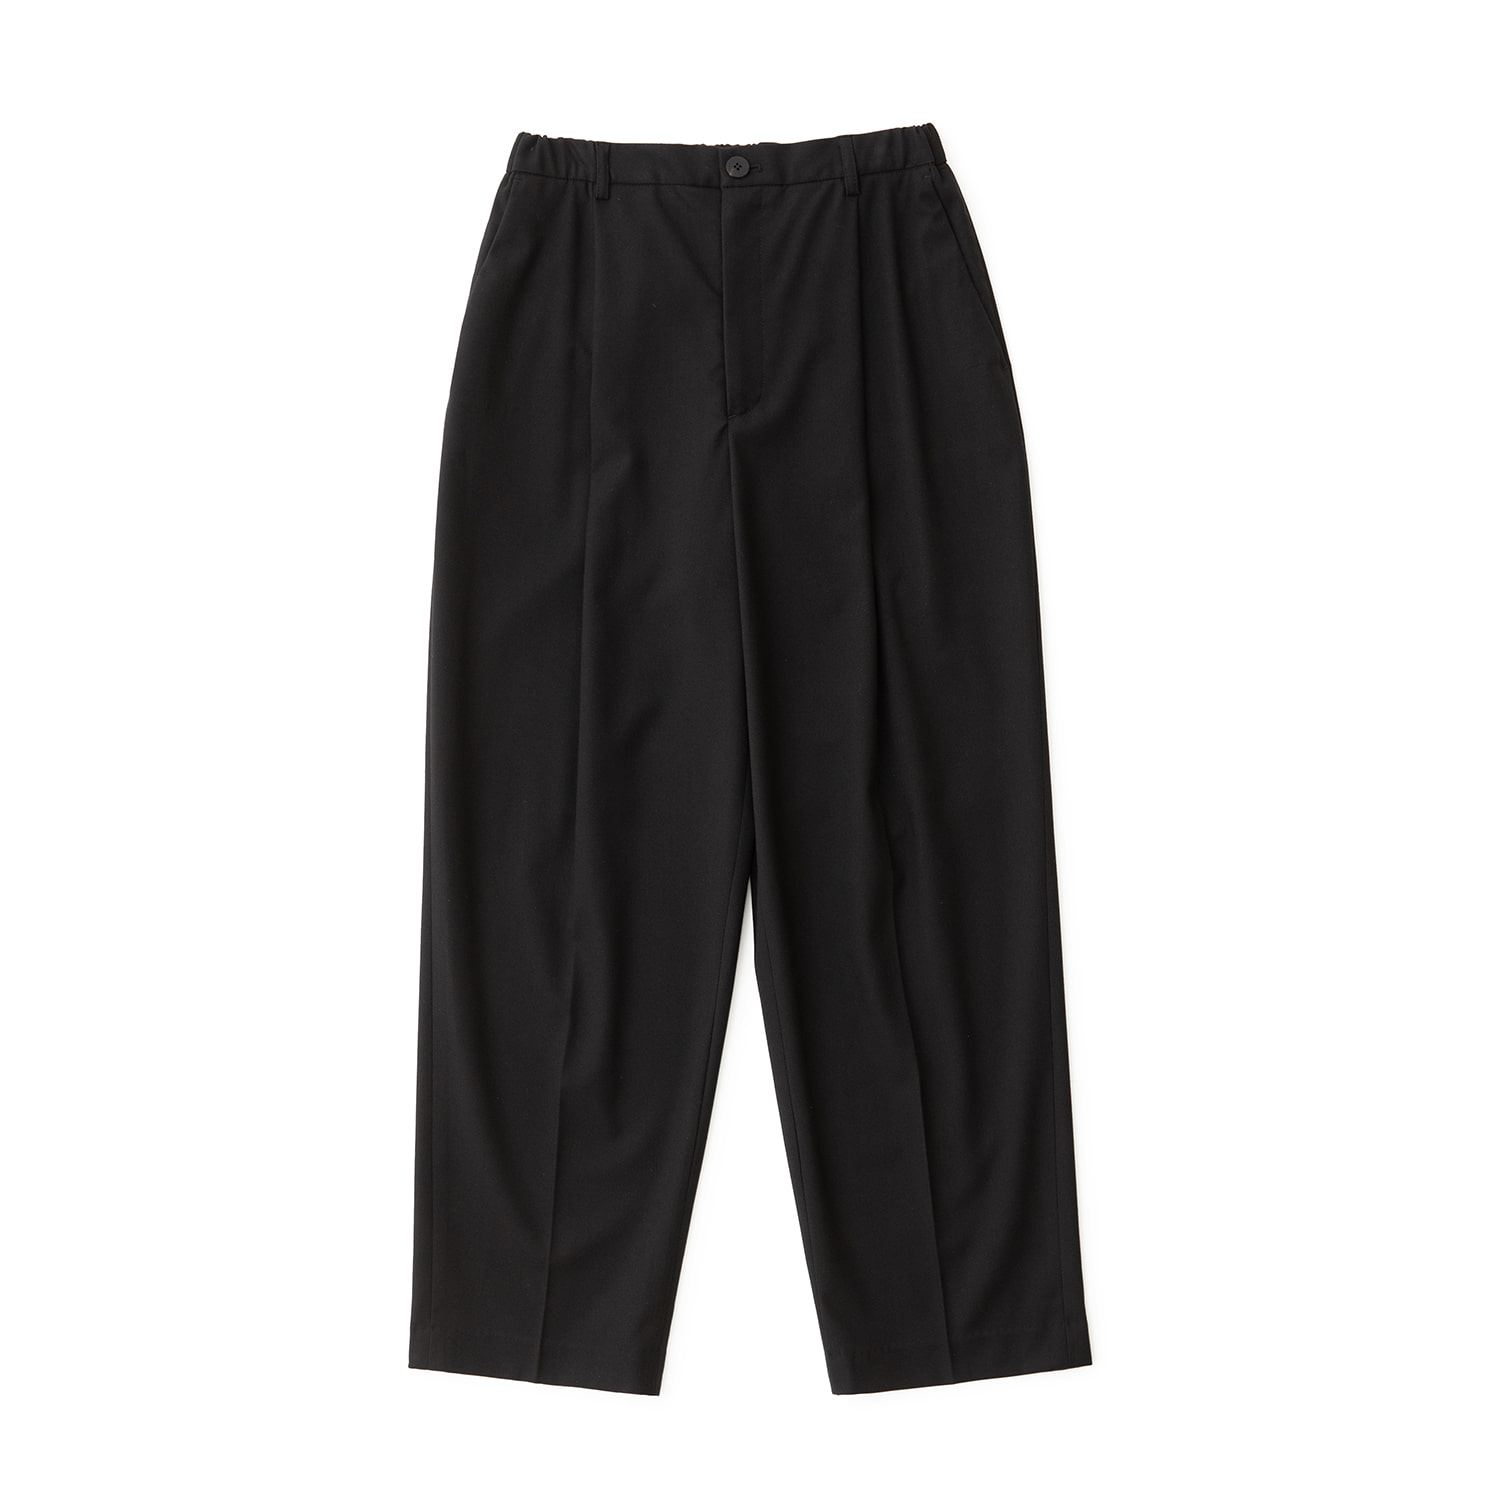 Calm Banded Pants (Black)